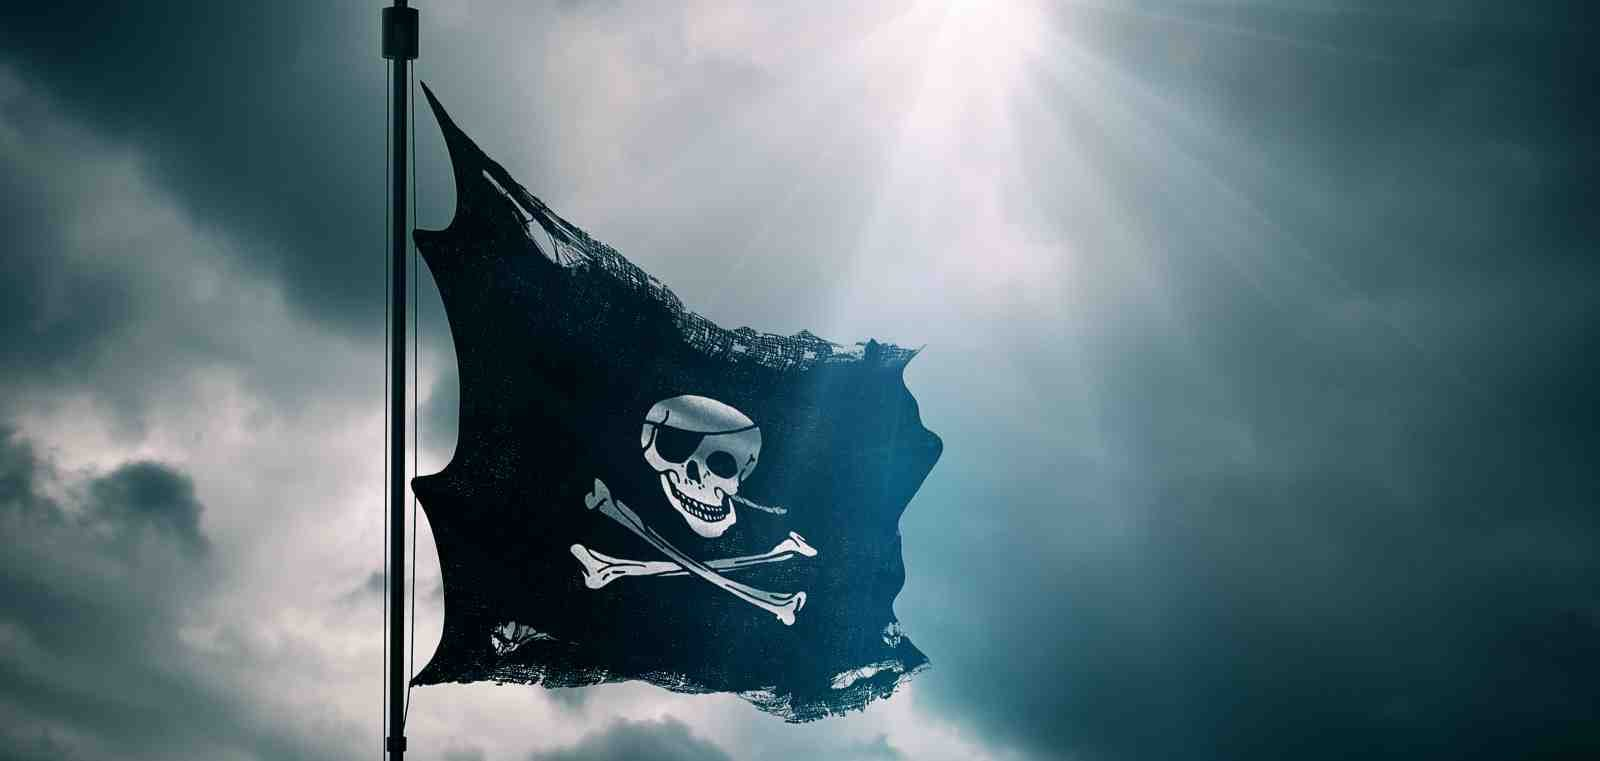 tattered skull and crossbones pirate flag against cloudy sky